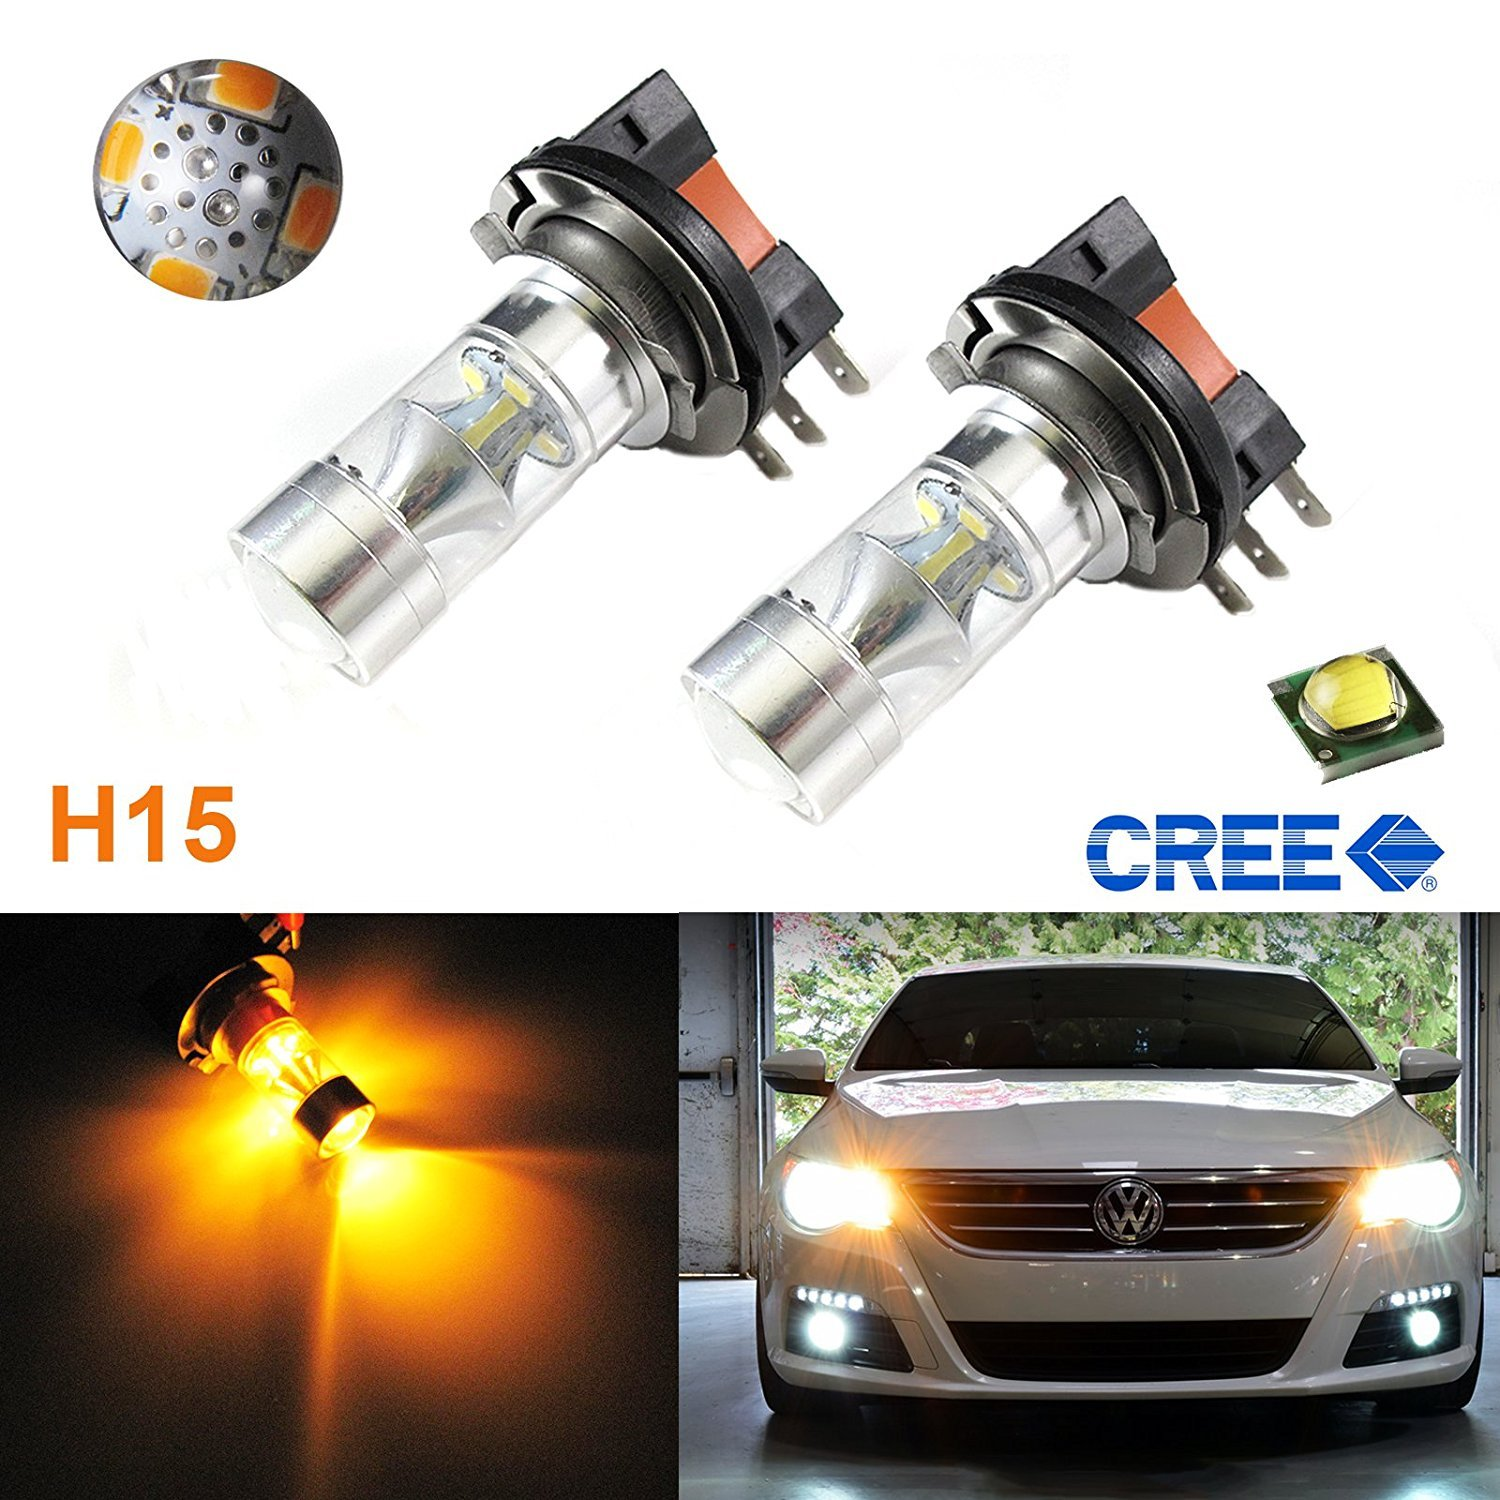 Xotic Tech 1 Pair Super Bright White 100W High Power CREE H15 LED Bulbs For VW Audi BMW Mercedes DRL Lamps